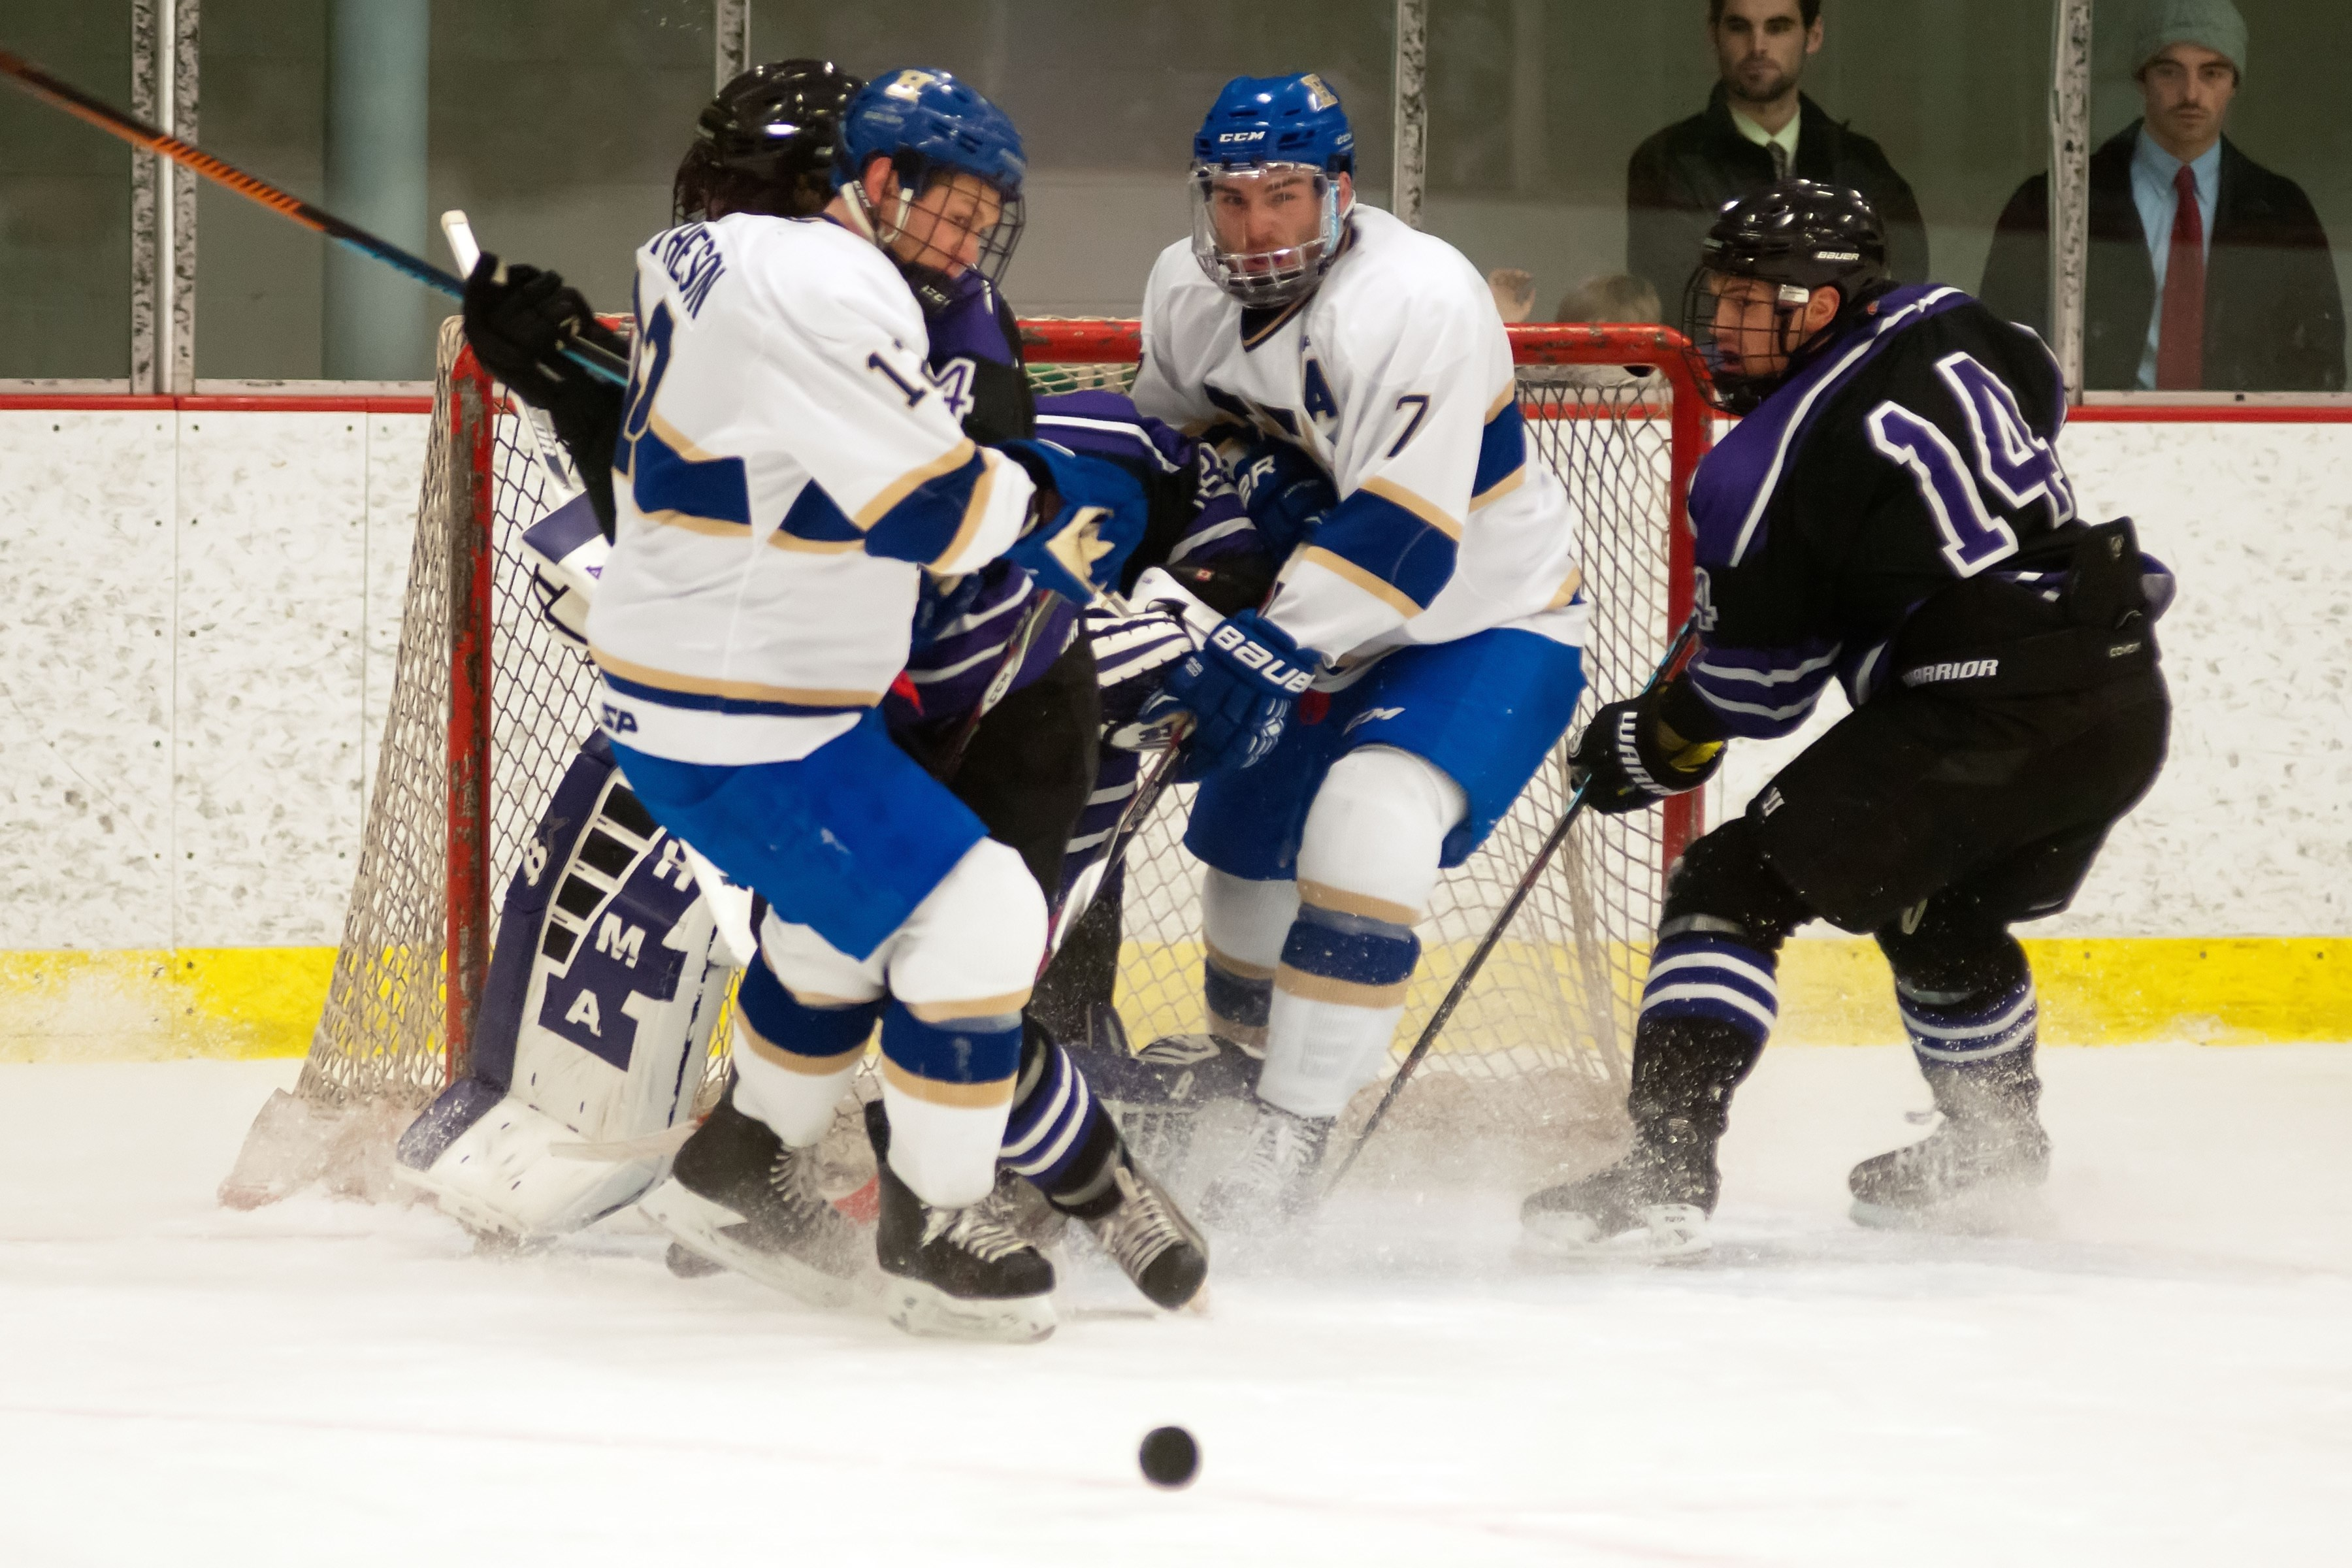 Men's hockey drops non-conference game at Utica - News ...